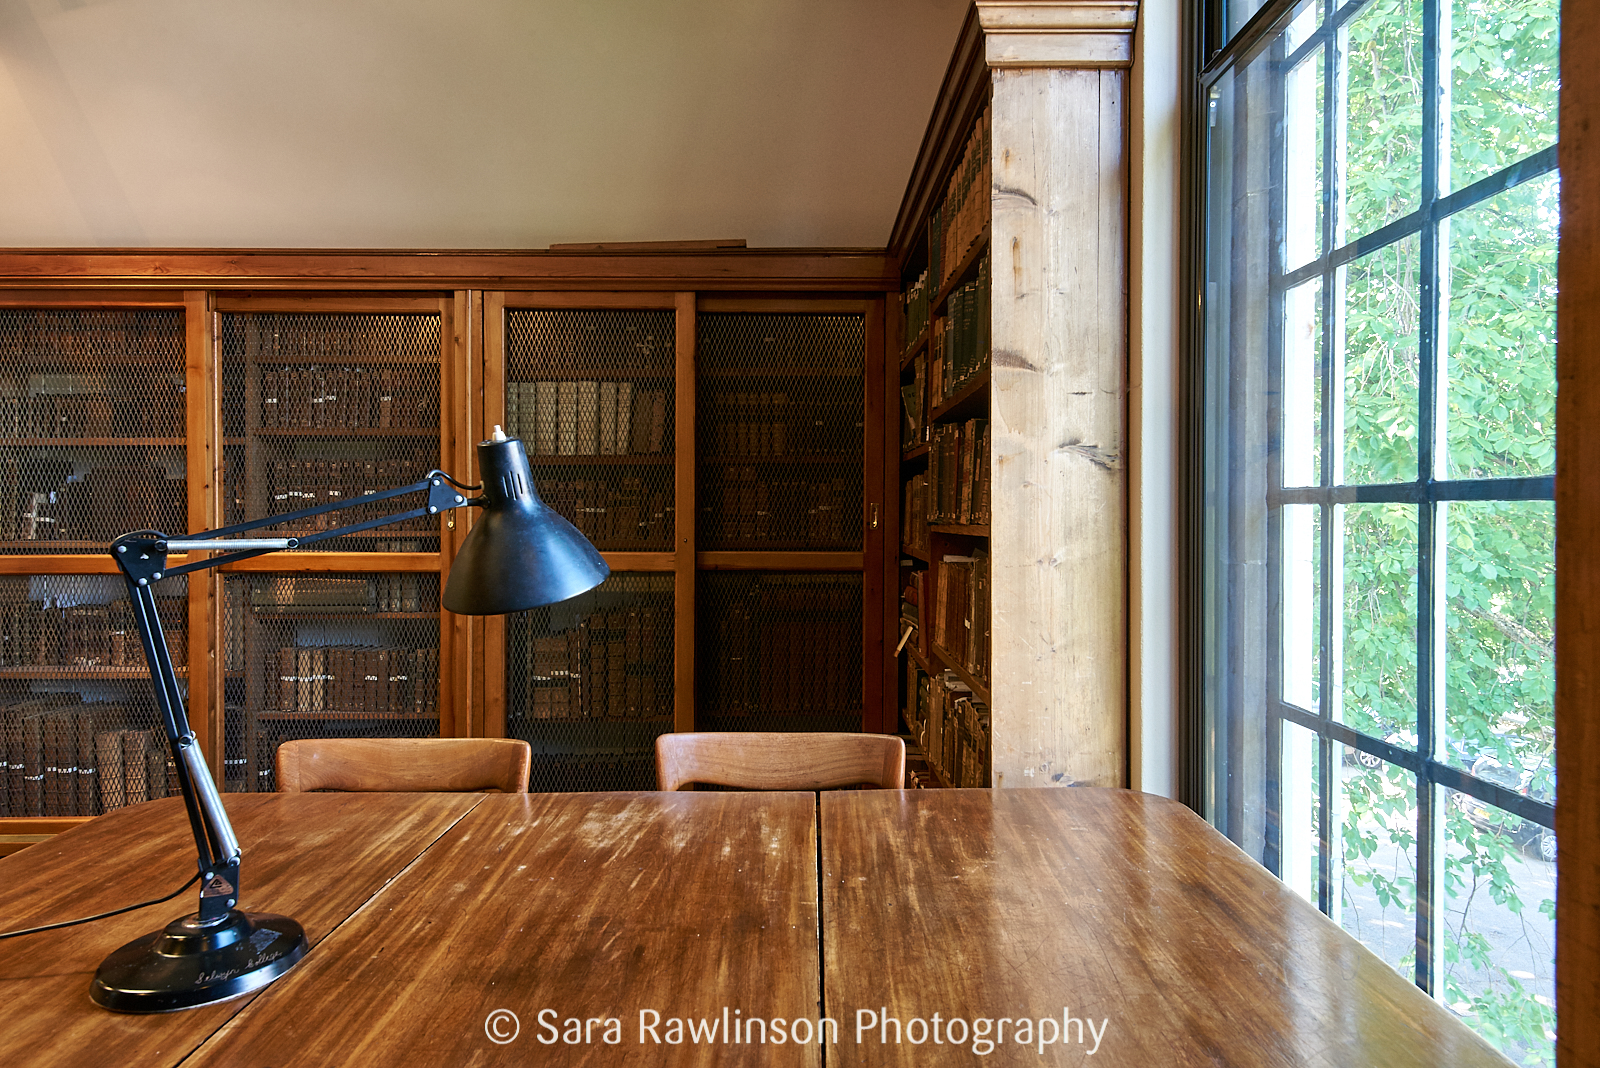 Desk, lamp, and window in Selwyn College Library